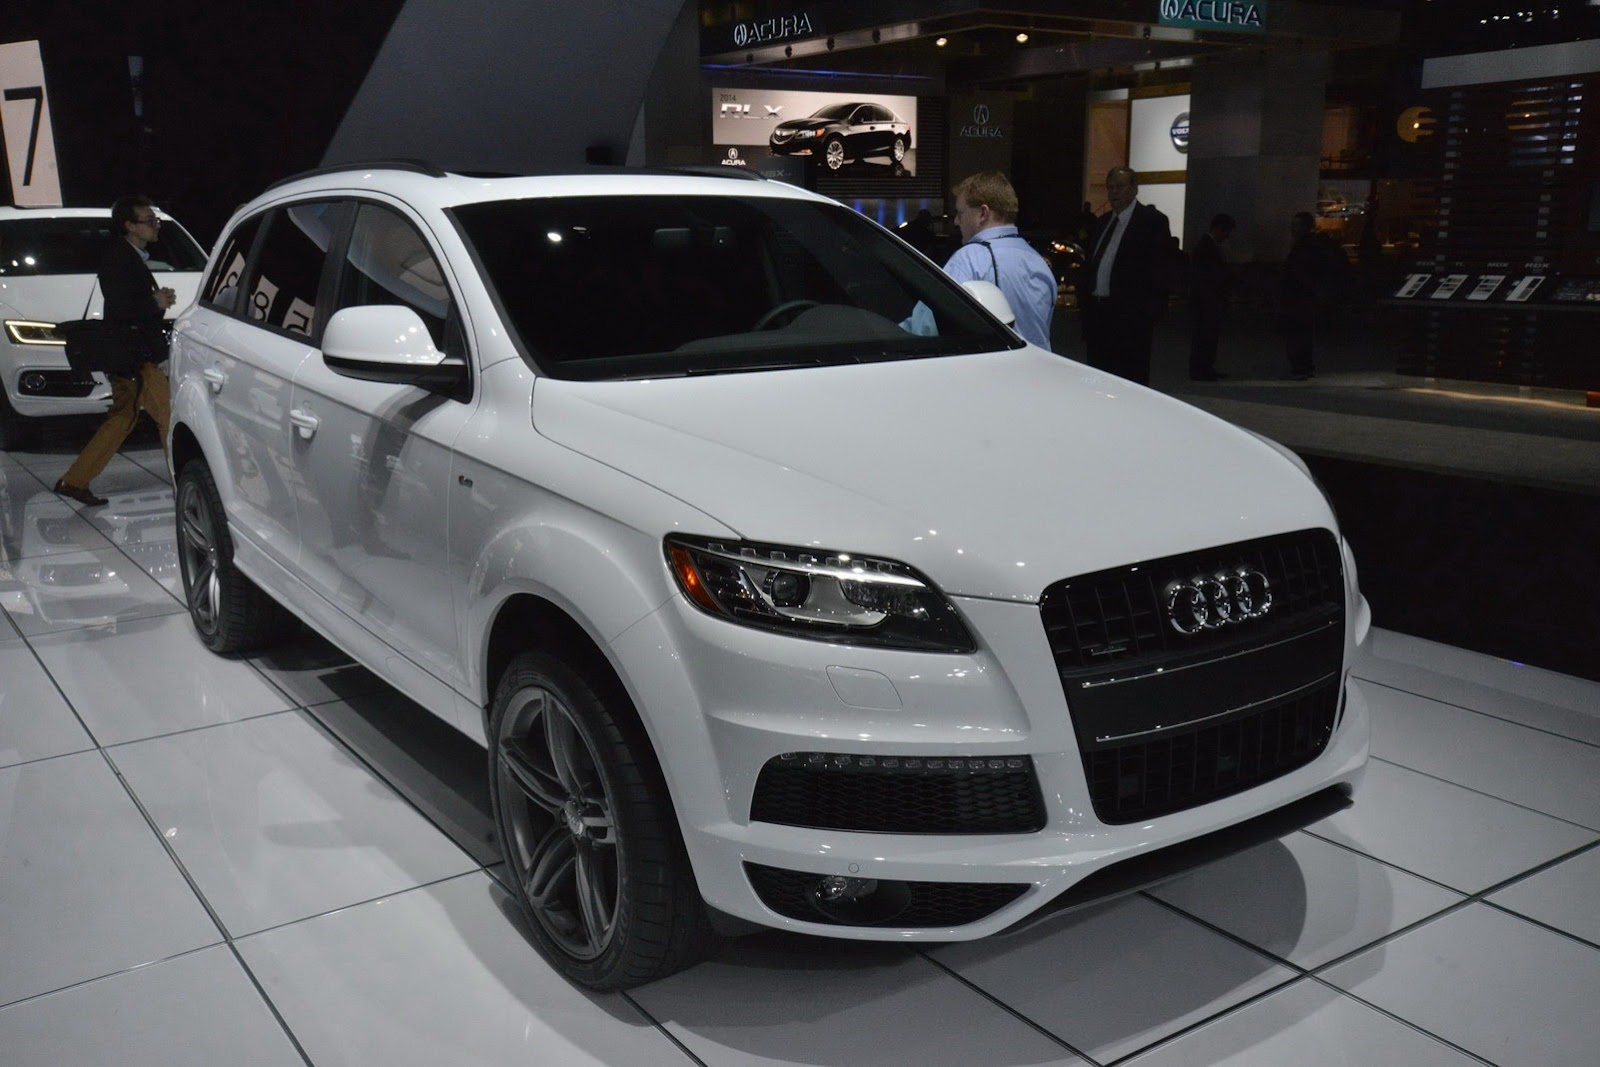 Audi Introduces New HP Liter V Diesel For A A A And - Audi usa models